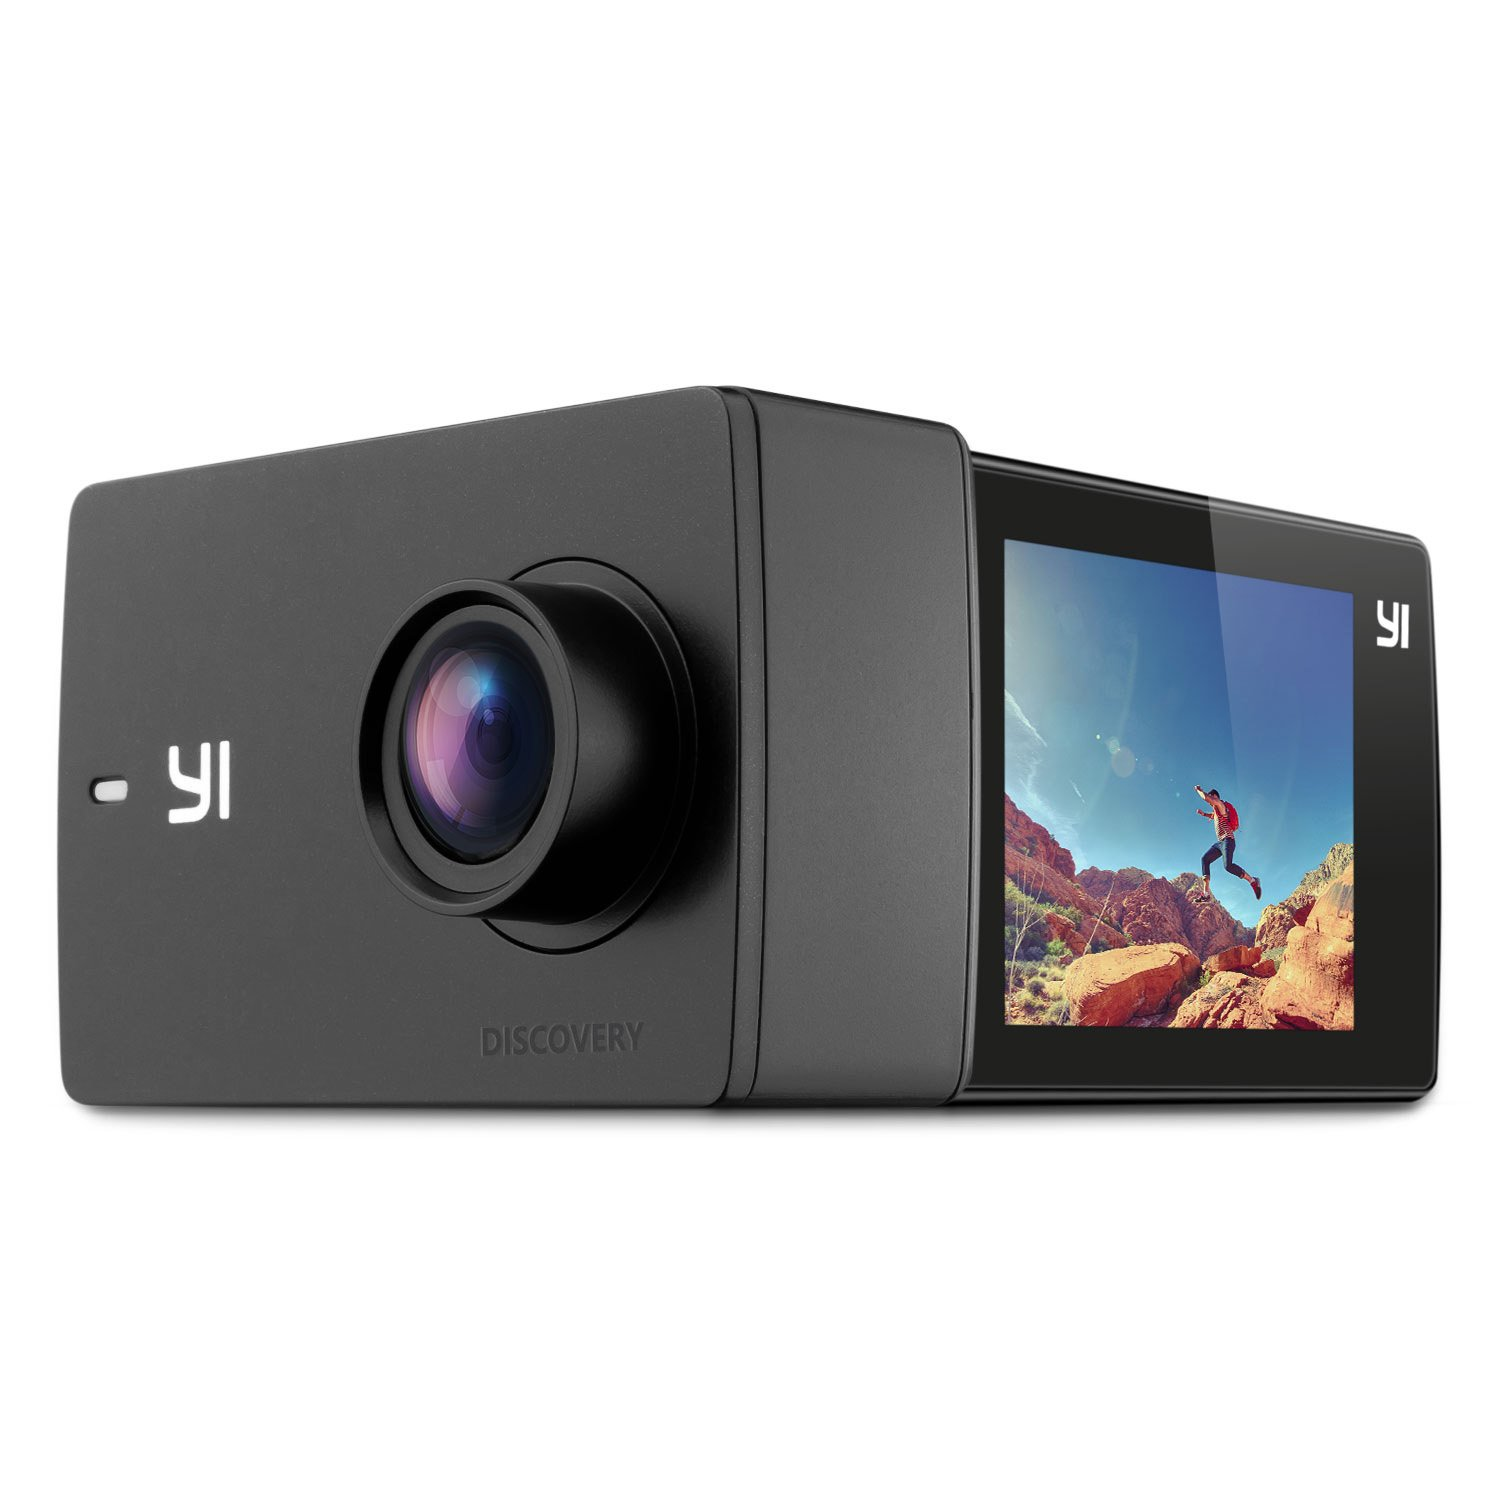 "YI Discovery Action Camera 4K WiFi Sports Cam with 2 0"" Touchscreen 150°Wide Angle Sony Image Sensor Amazon Camera &"